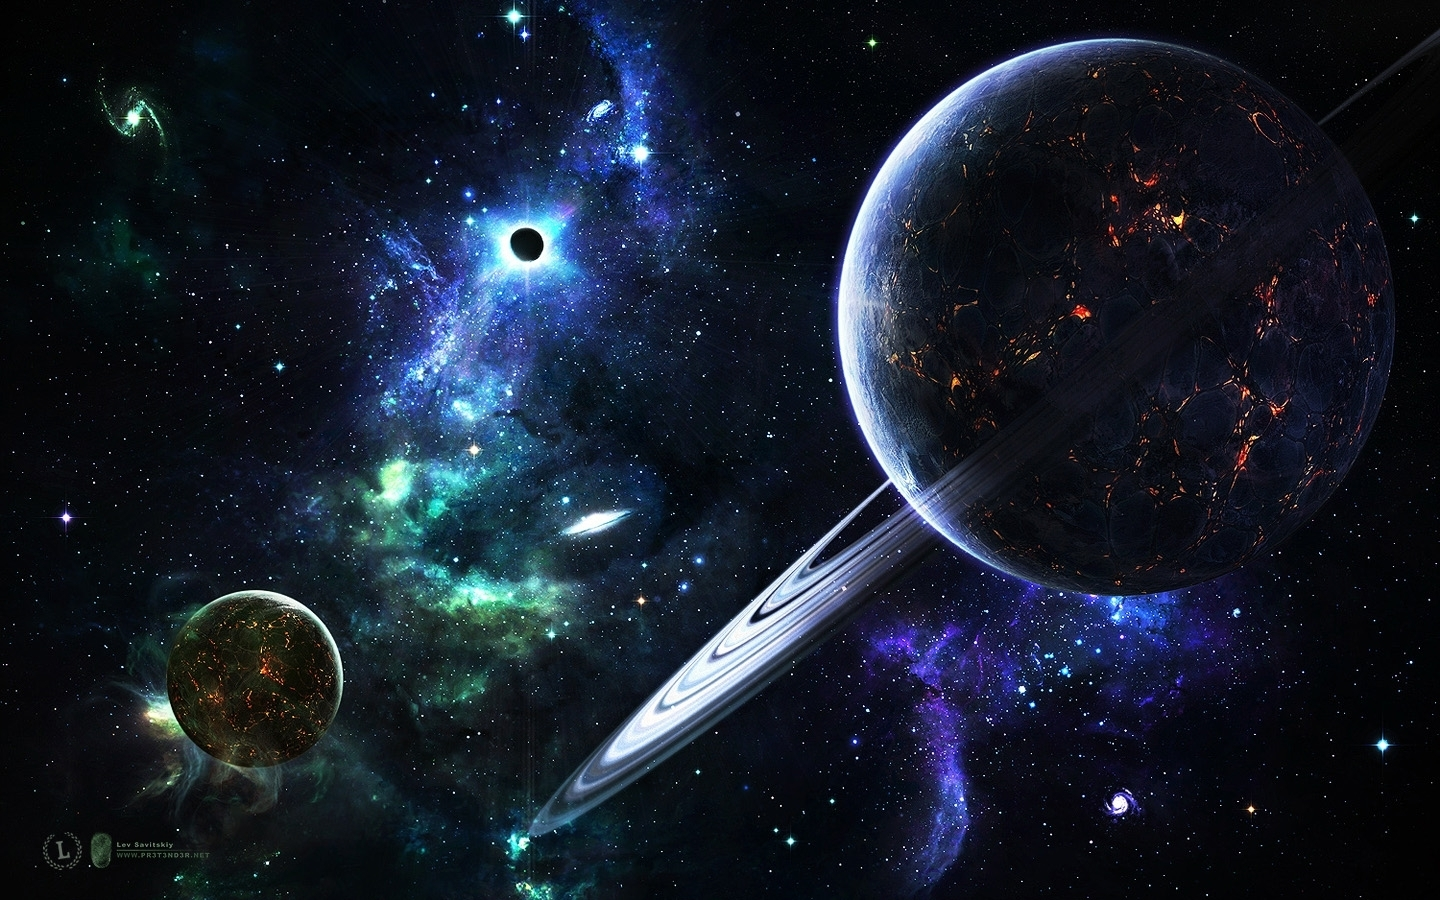 Animated Space Desktop Backgrounds Desktop Image 1440x900